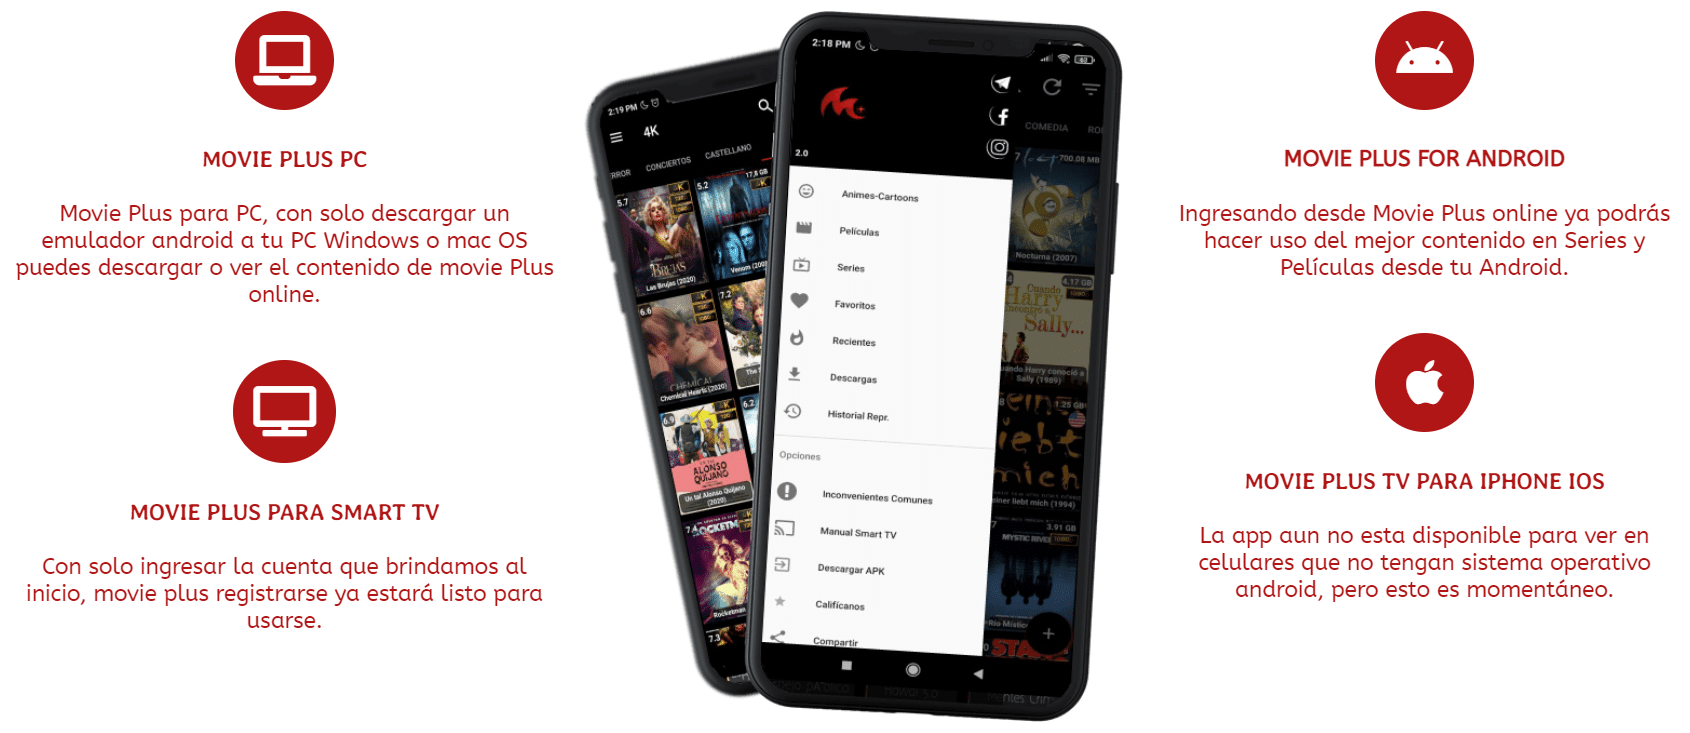 Movie Plus APK - InPost